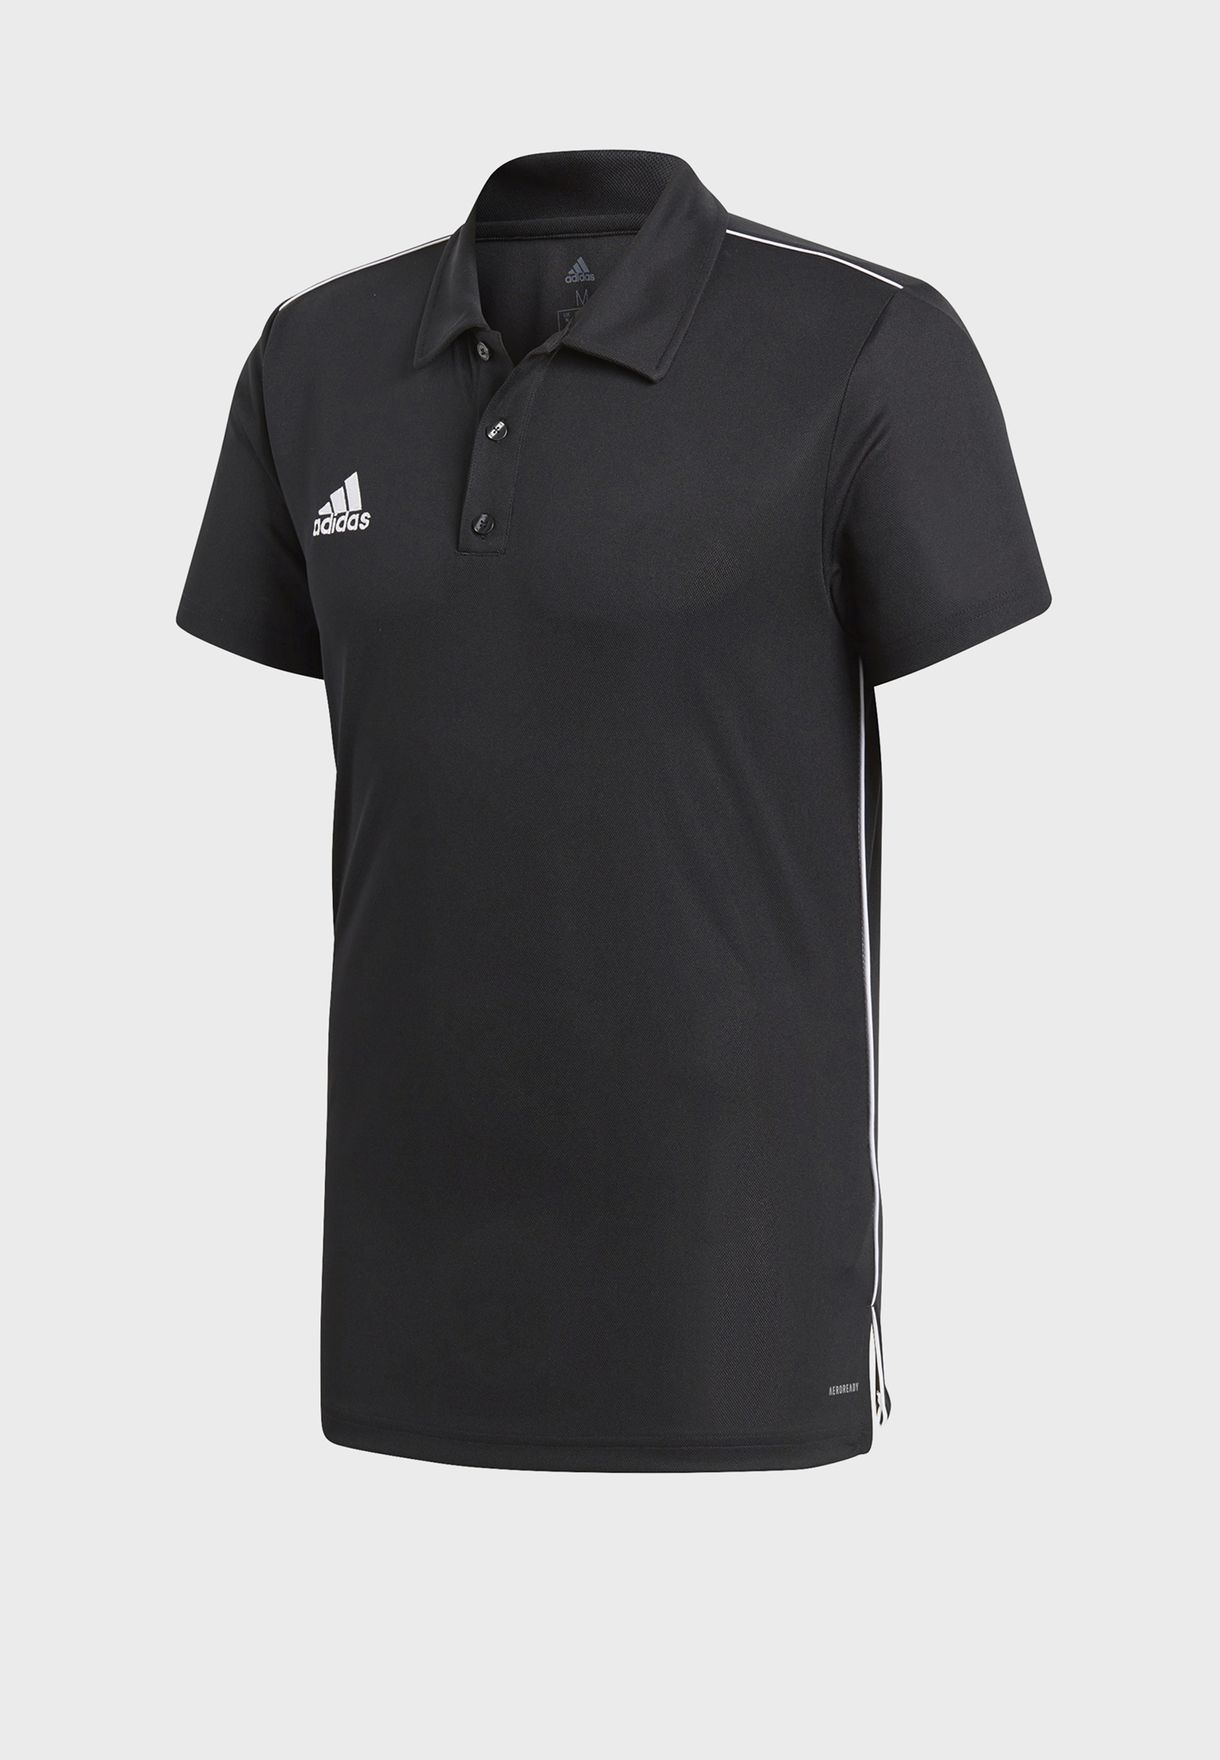 Core Eleven Football Soccer Men's Polo Shirt